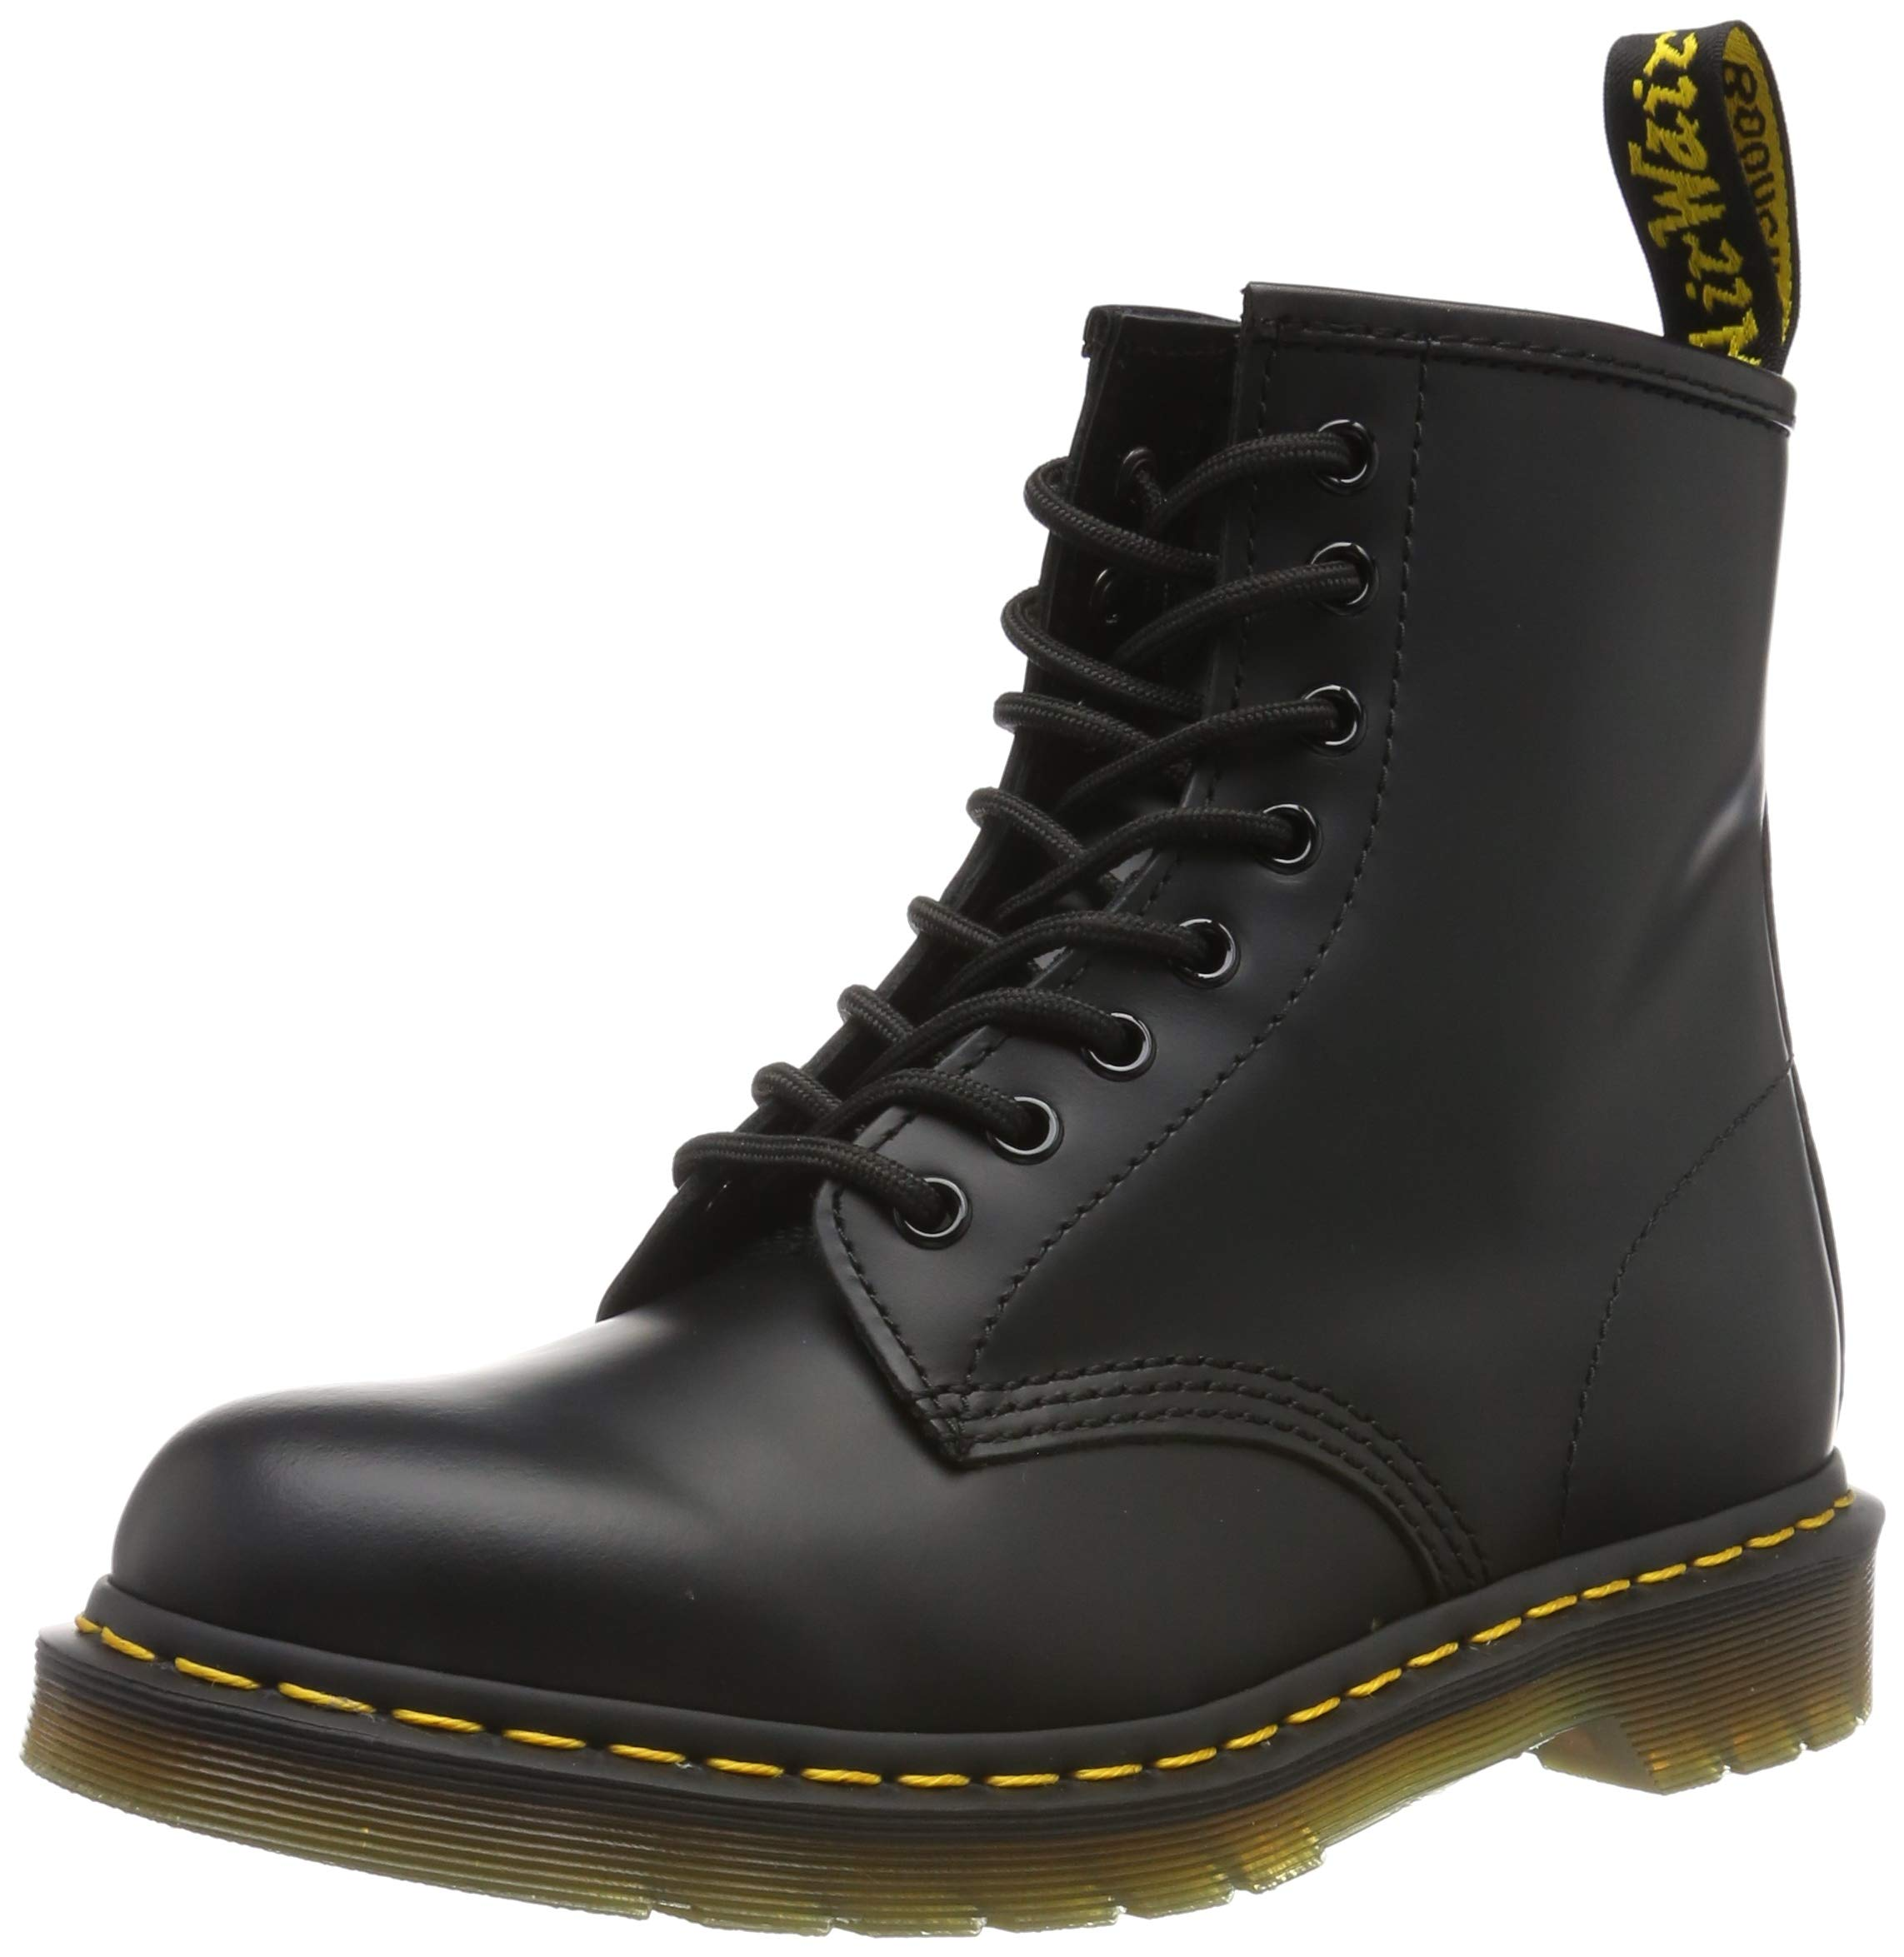 Dr. Martens 1460 Originals 8 Eye Lace Up Boot,Black Smooth Leather,3 UK (4 M US Mens / 5 M US Womens) by Dr. Martens